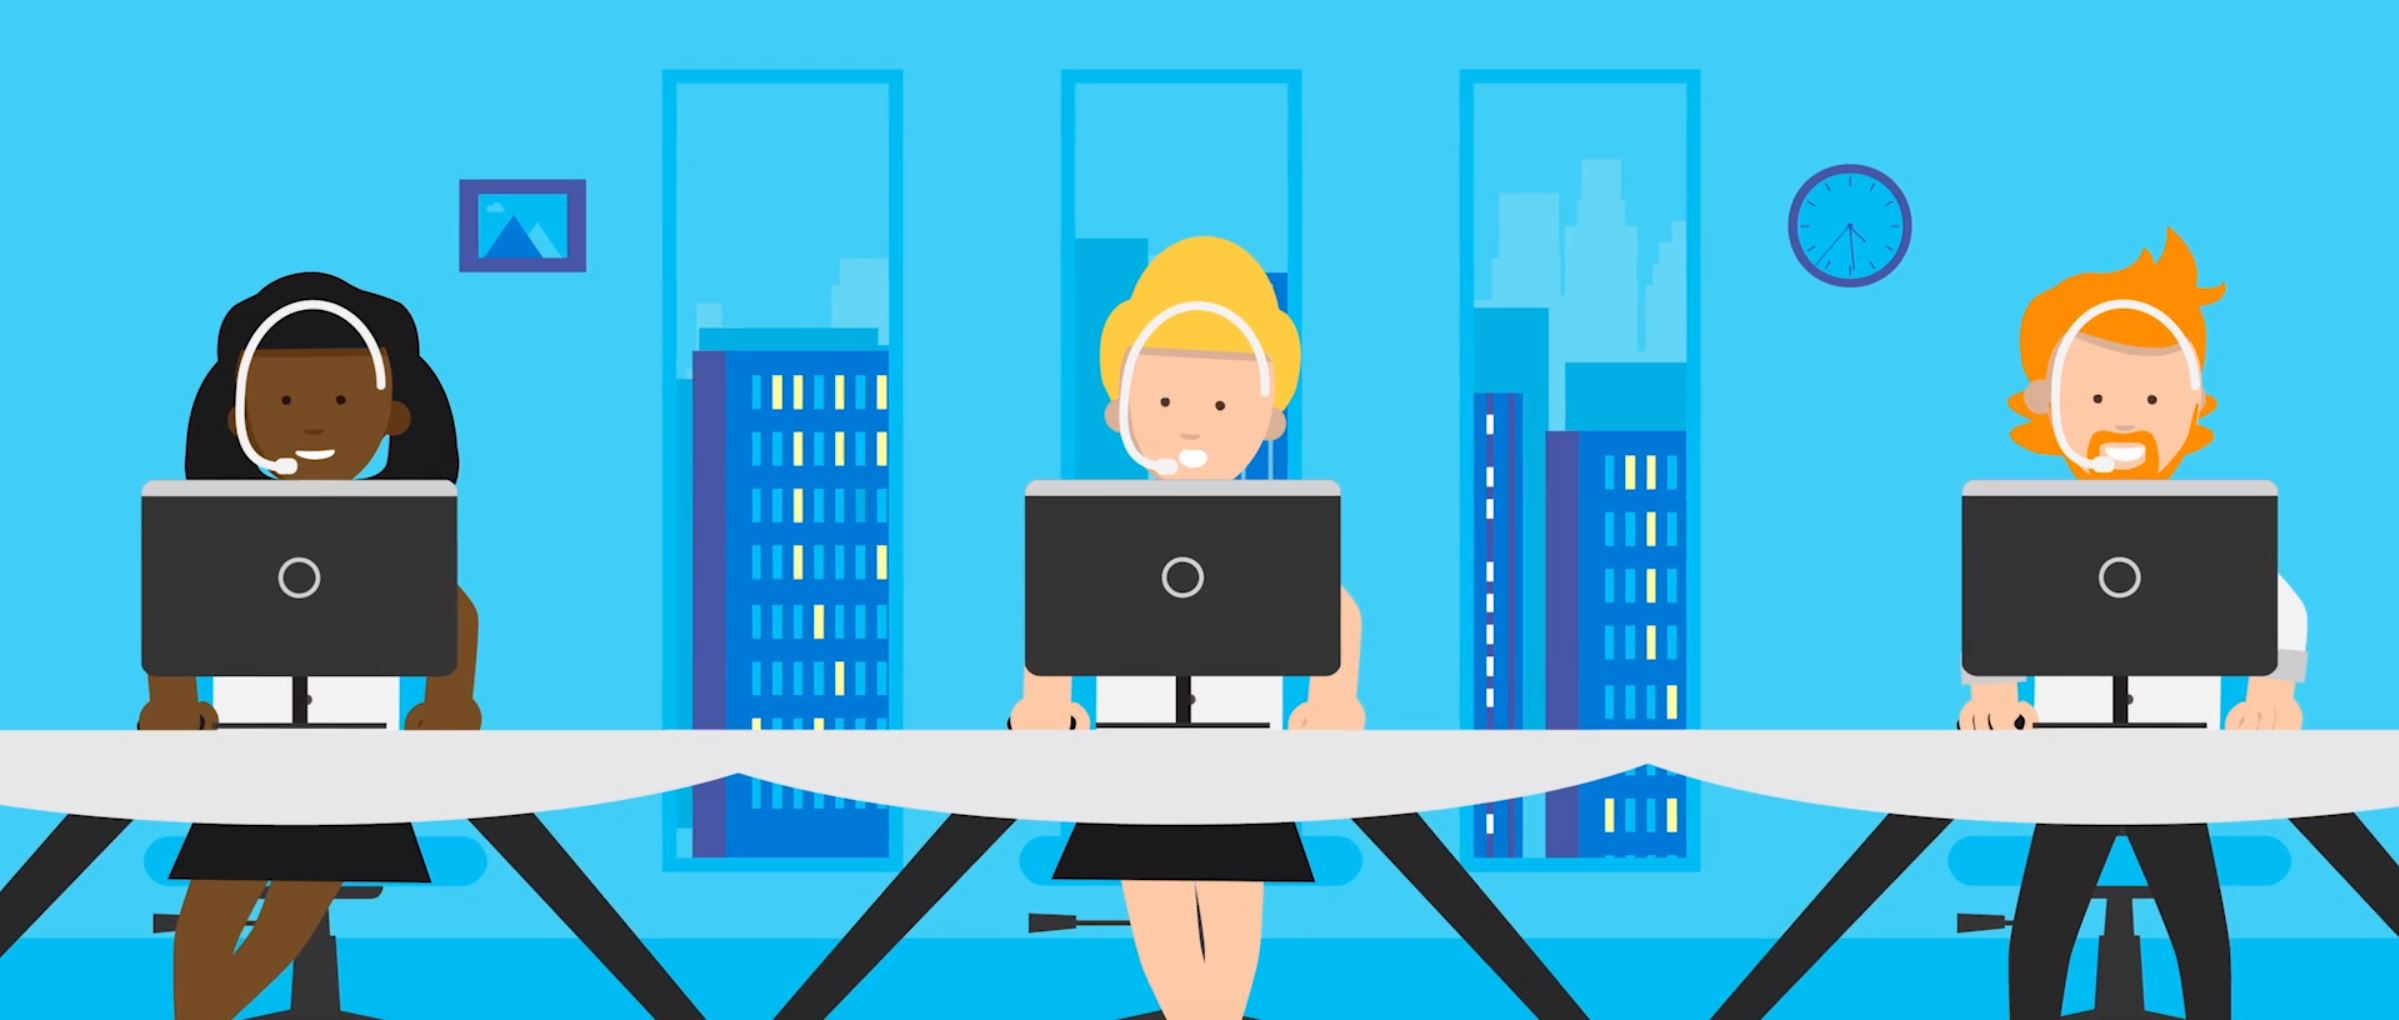 2D character animation image 6 for Microsoft Innovation - manufacturing project